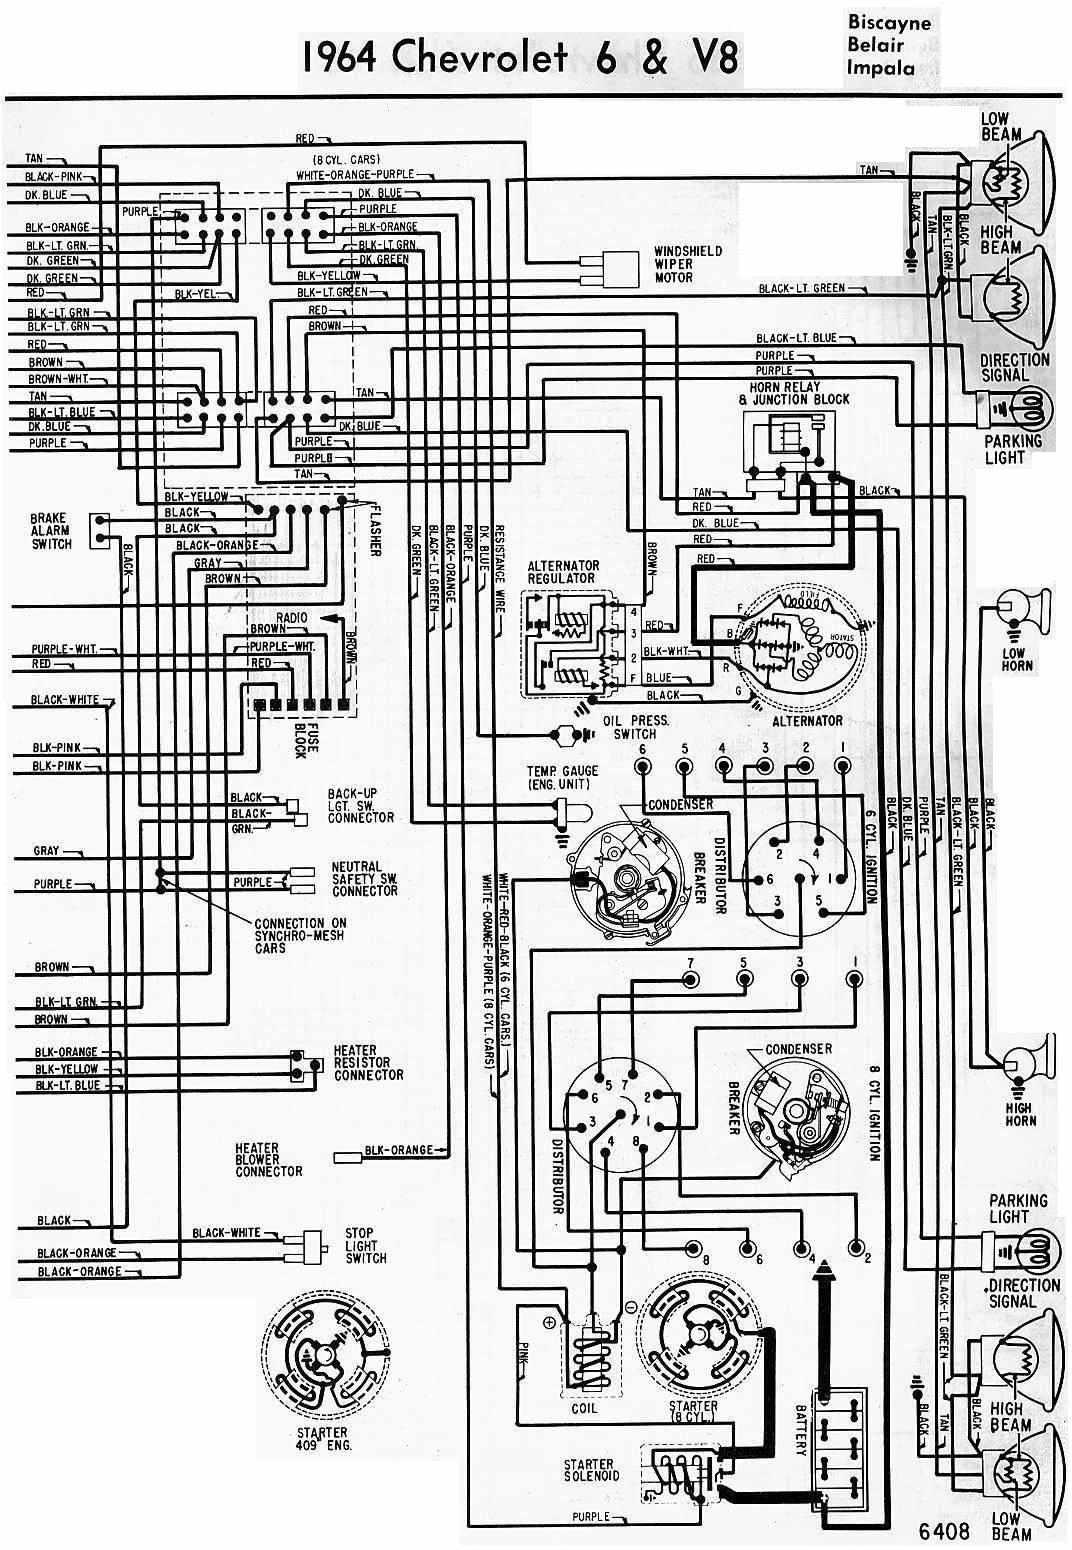 1964 Impala Engine Wiring Diagram 33 Images Diagrams Of 1961 Mercury 6 Electrical Chevrolet And